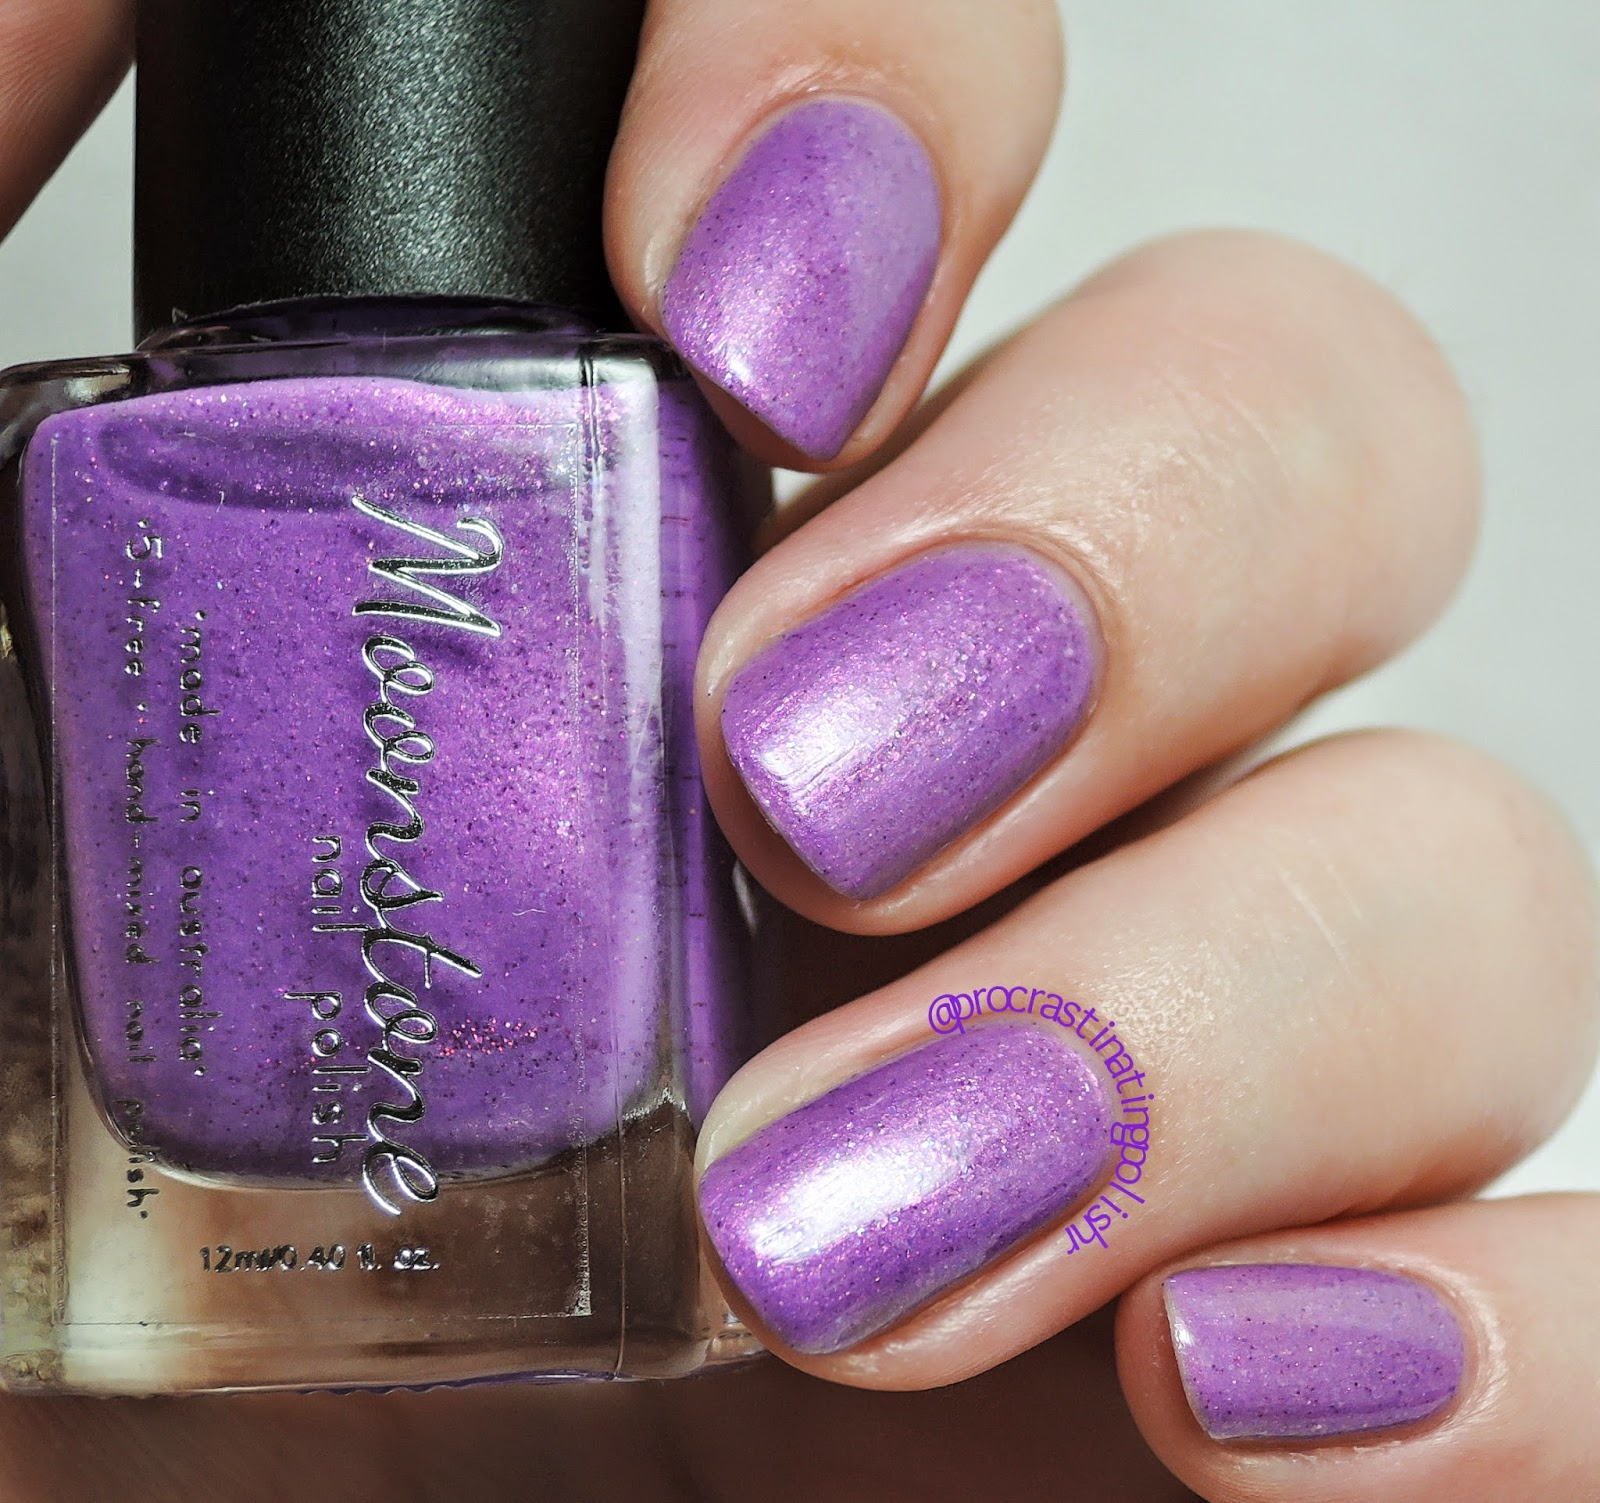 Moonstone Nail Polish - Hermione | Wicked Witches collection